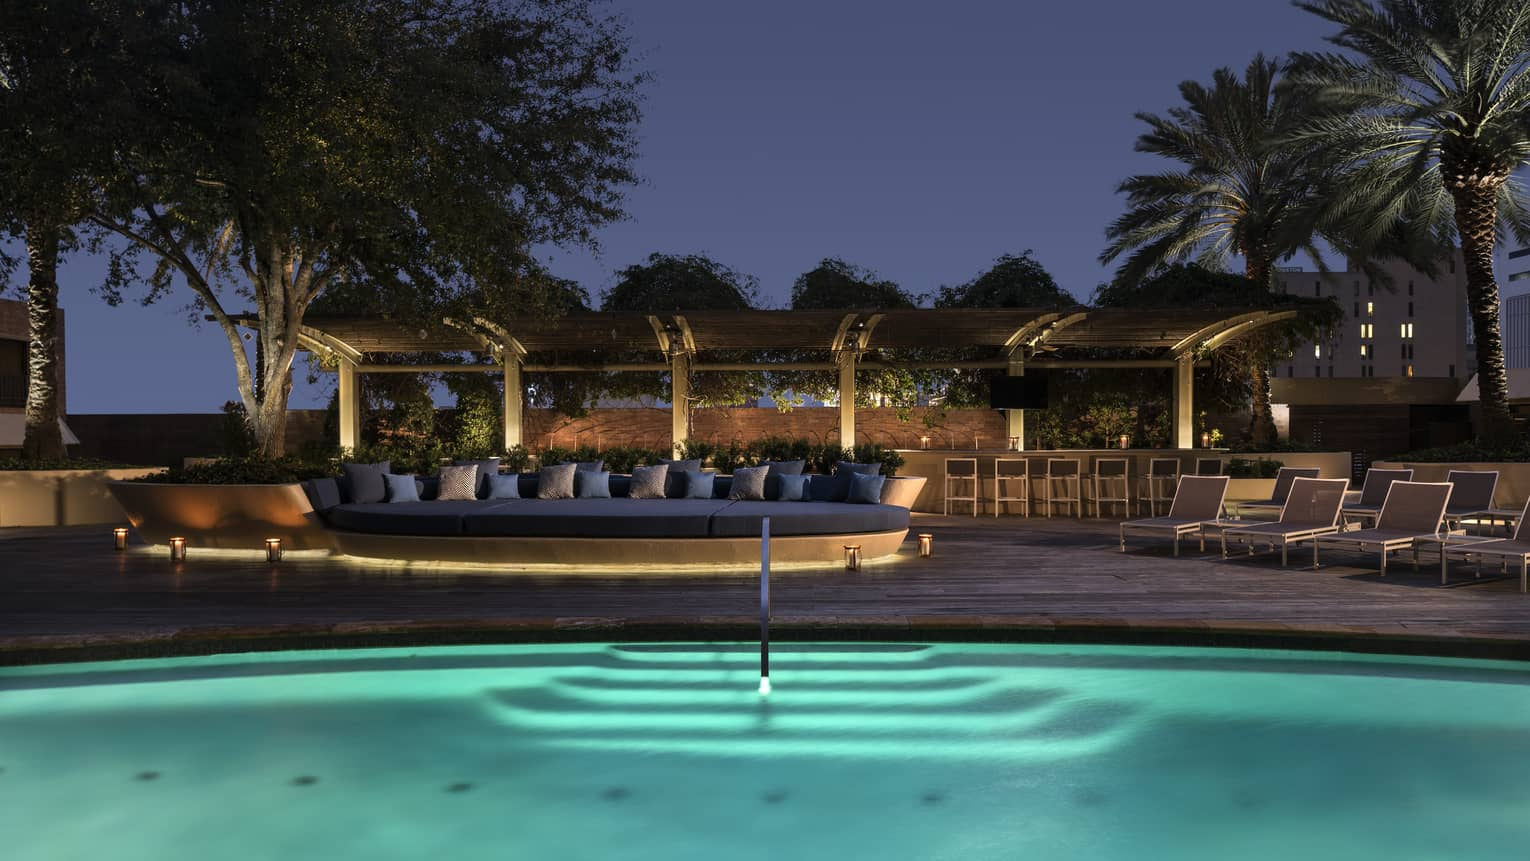 Outdoor swimming pool with lights and patio with large banquette at night